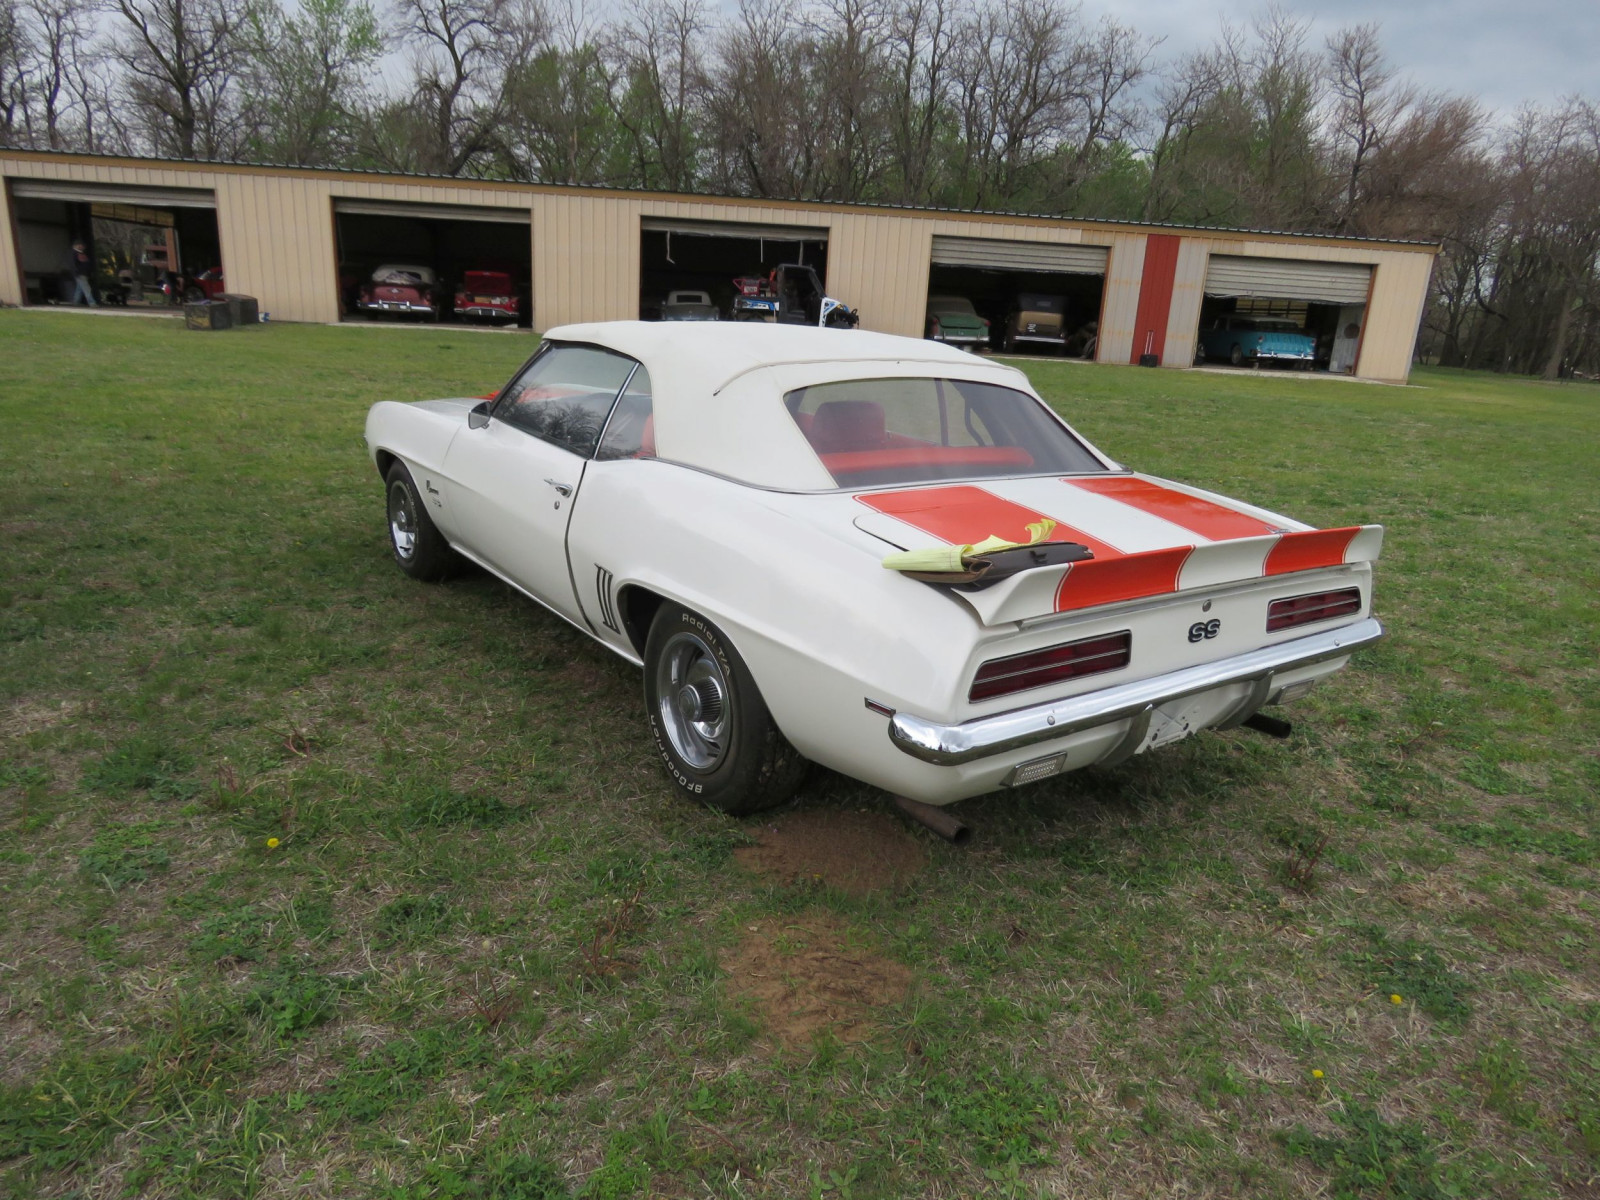 1969 CHEVROLET INDY PACECAR CAMARO CONVERTIBLE - Image 7